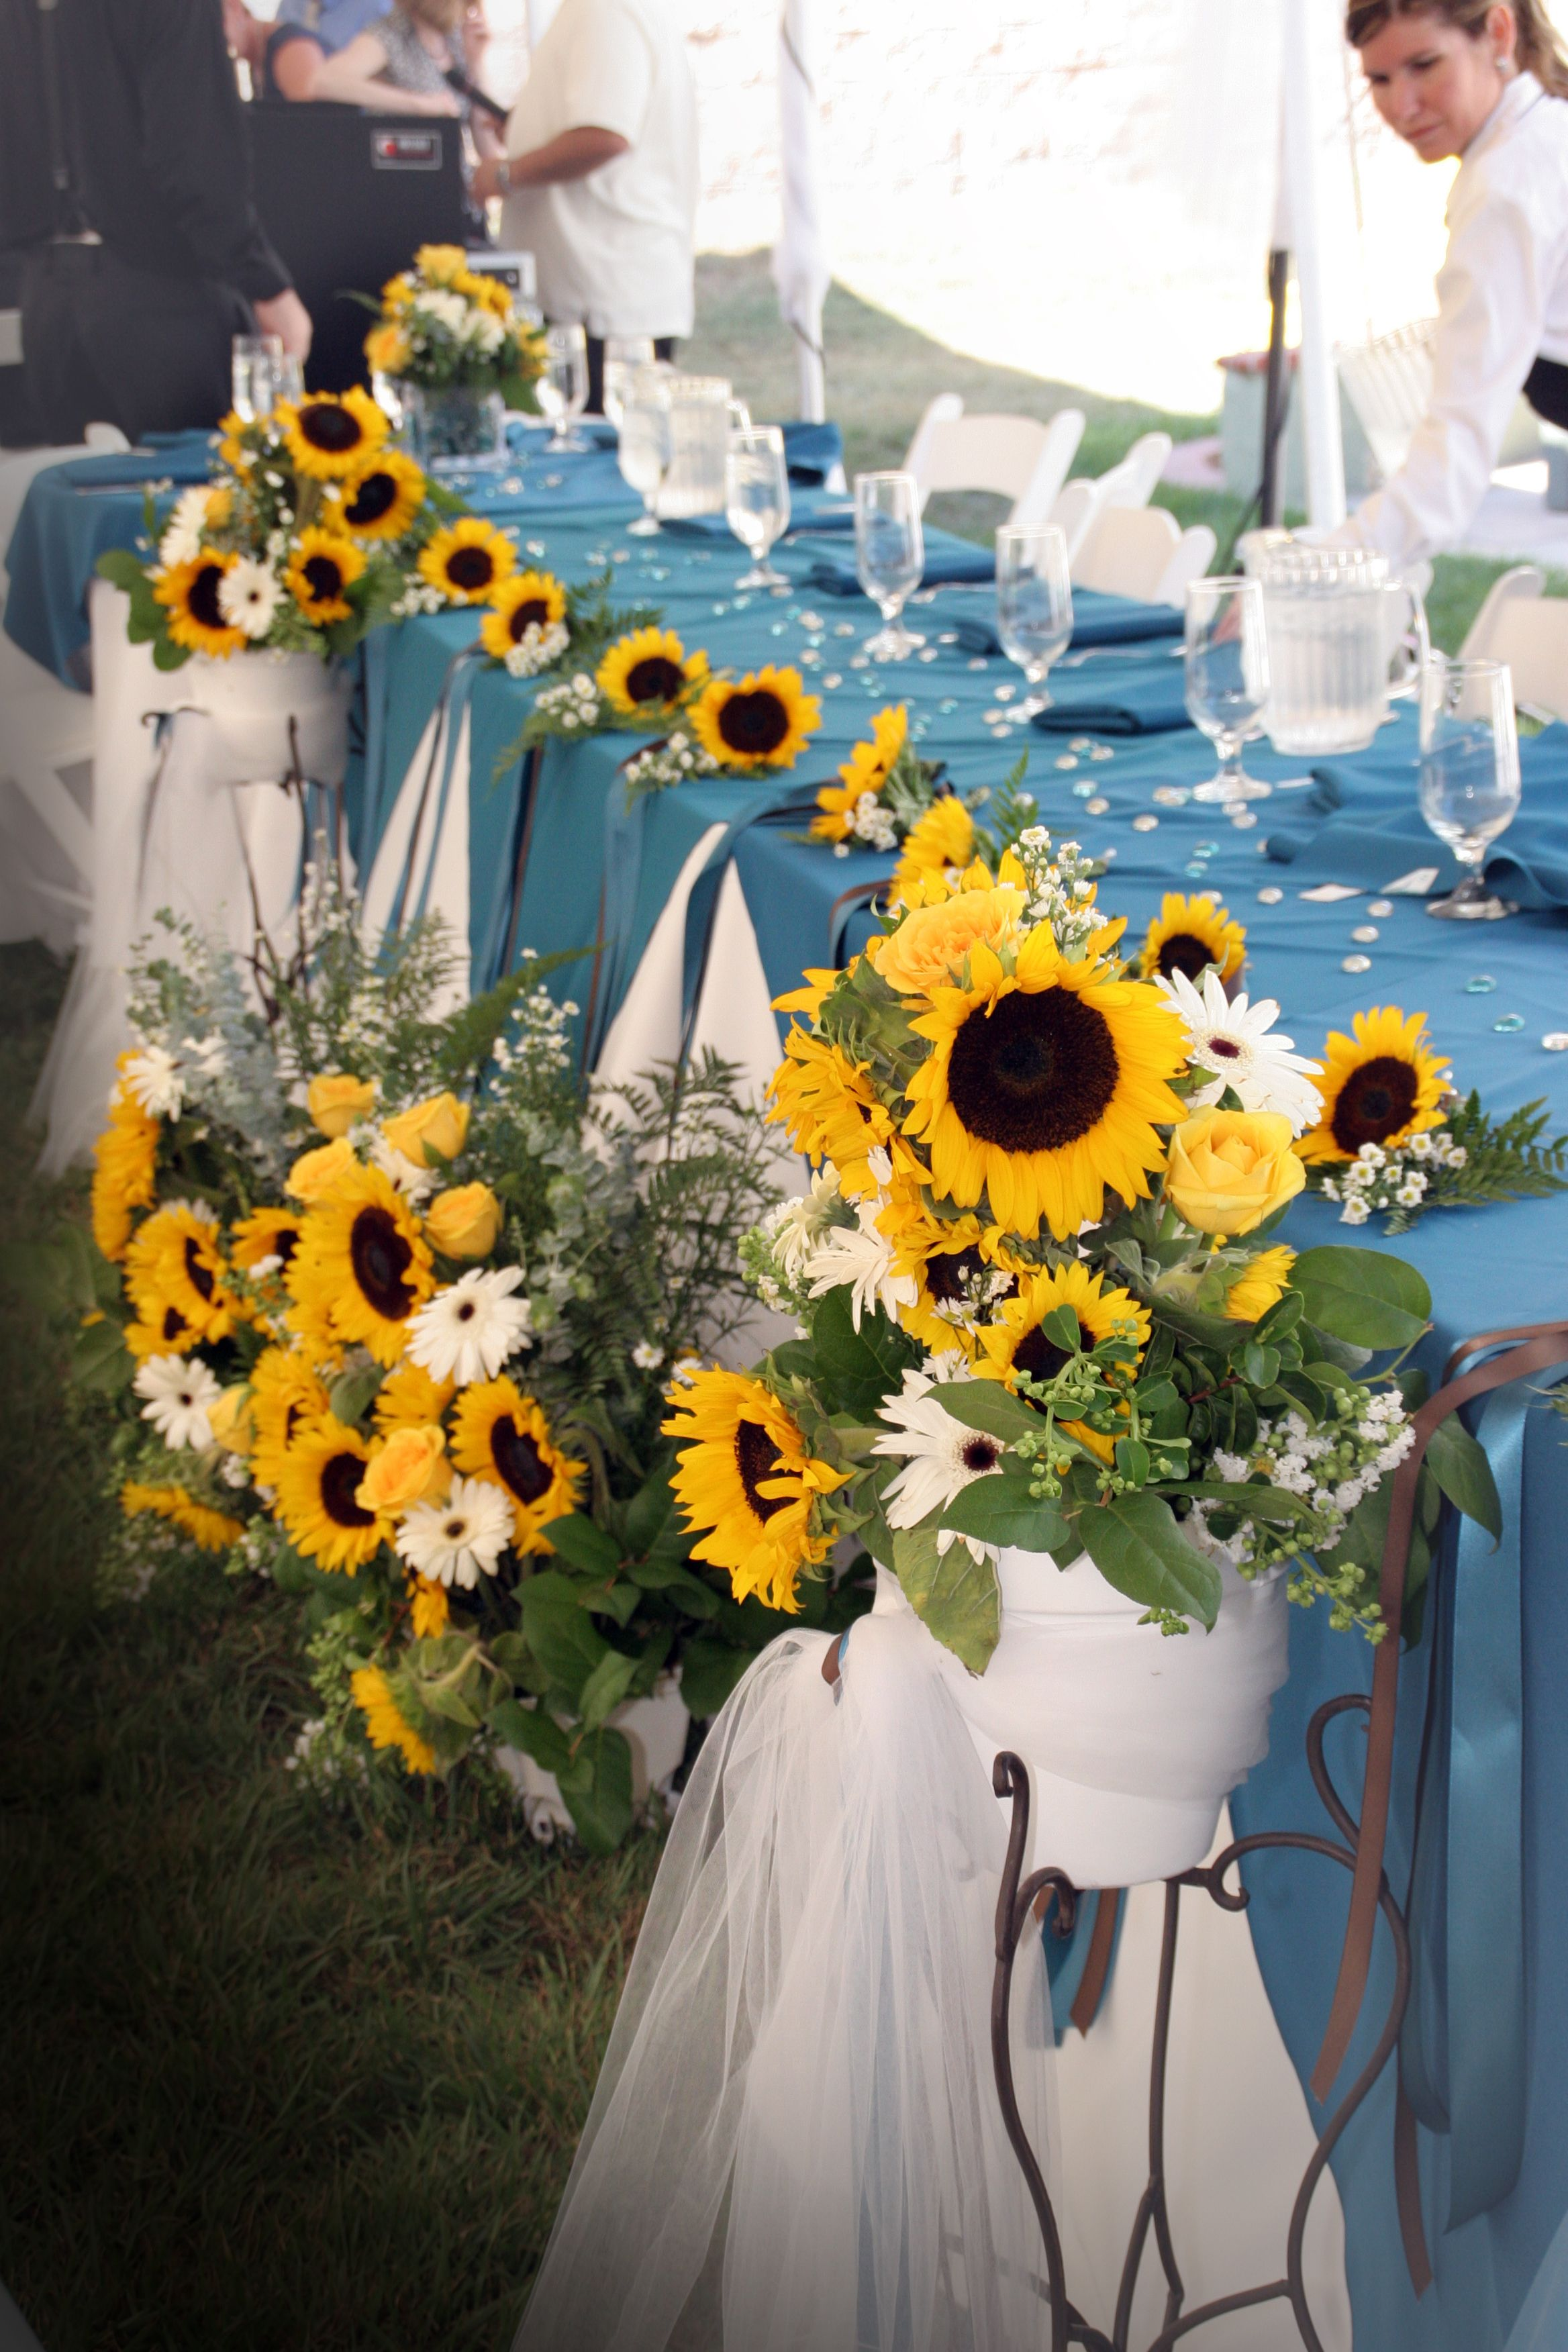 Wedding Decorations For Tables In Light Blue And Yellow